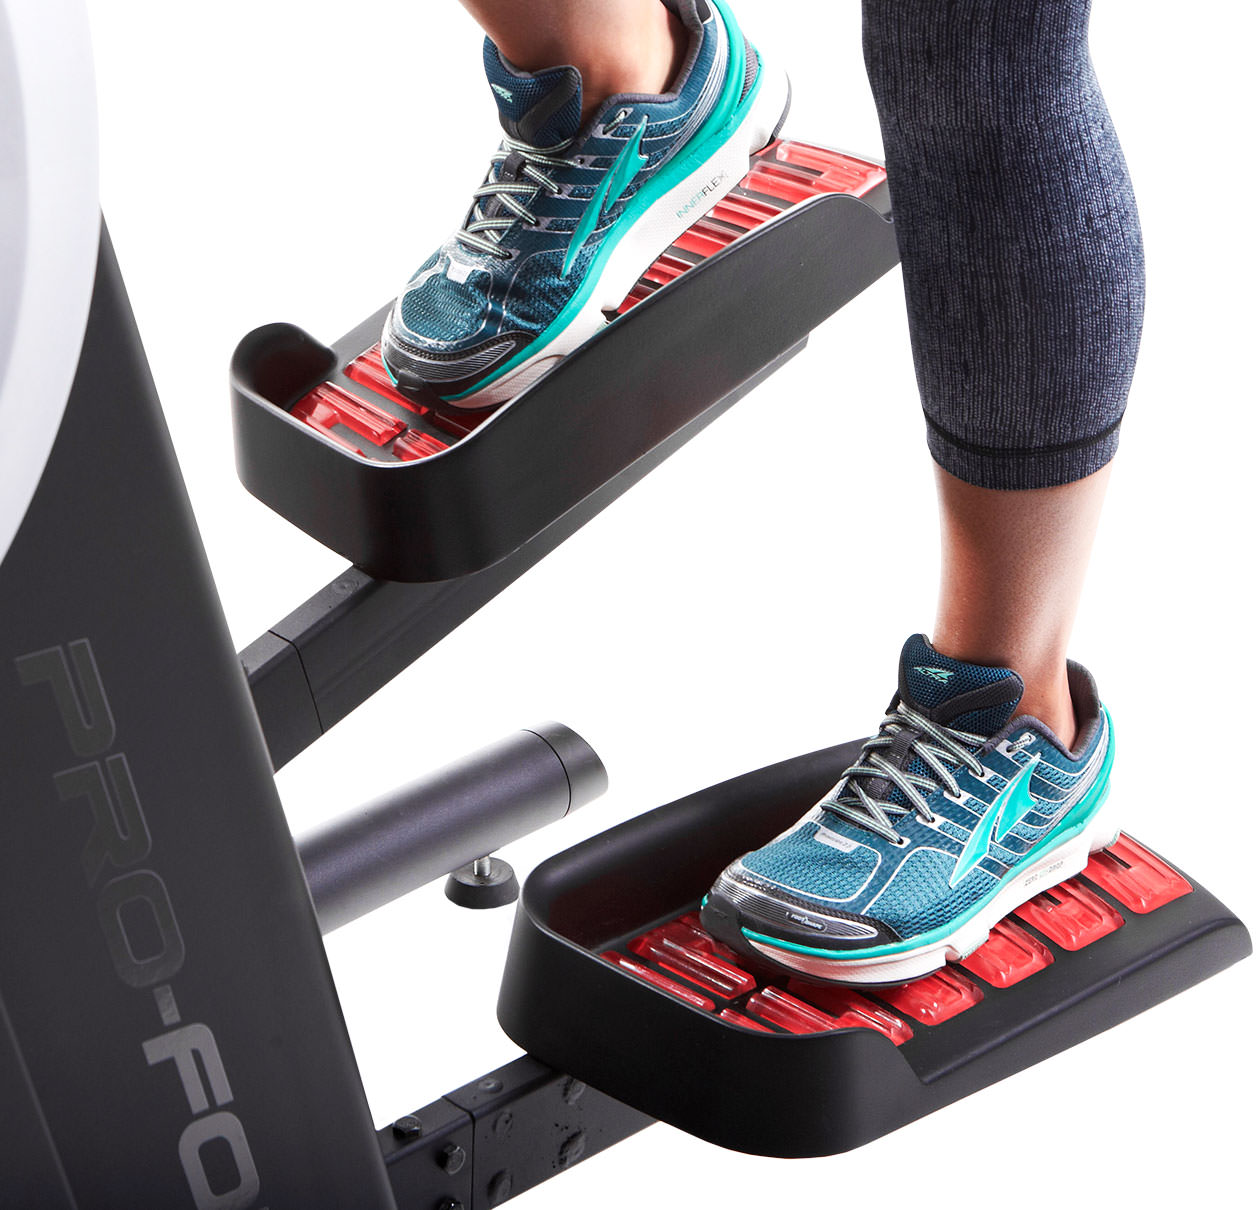 Proform HIIT Trainer gallery image 6